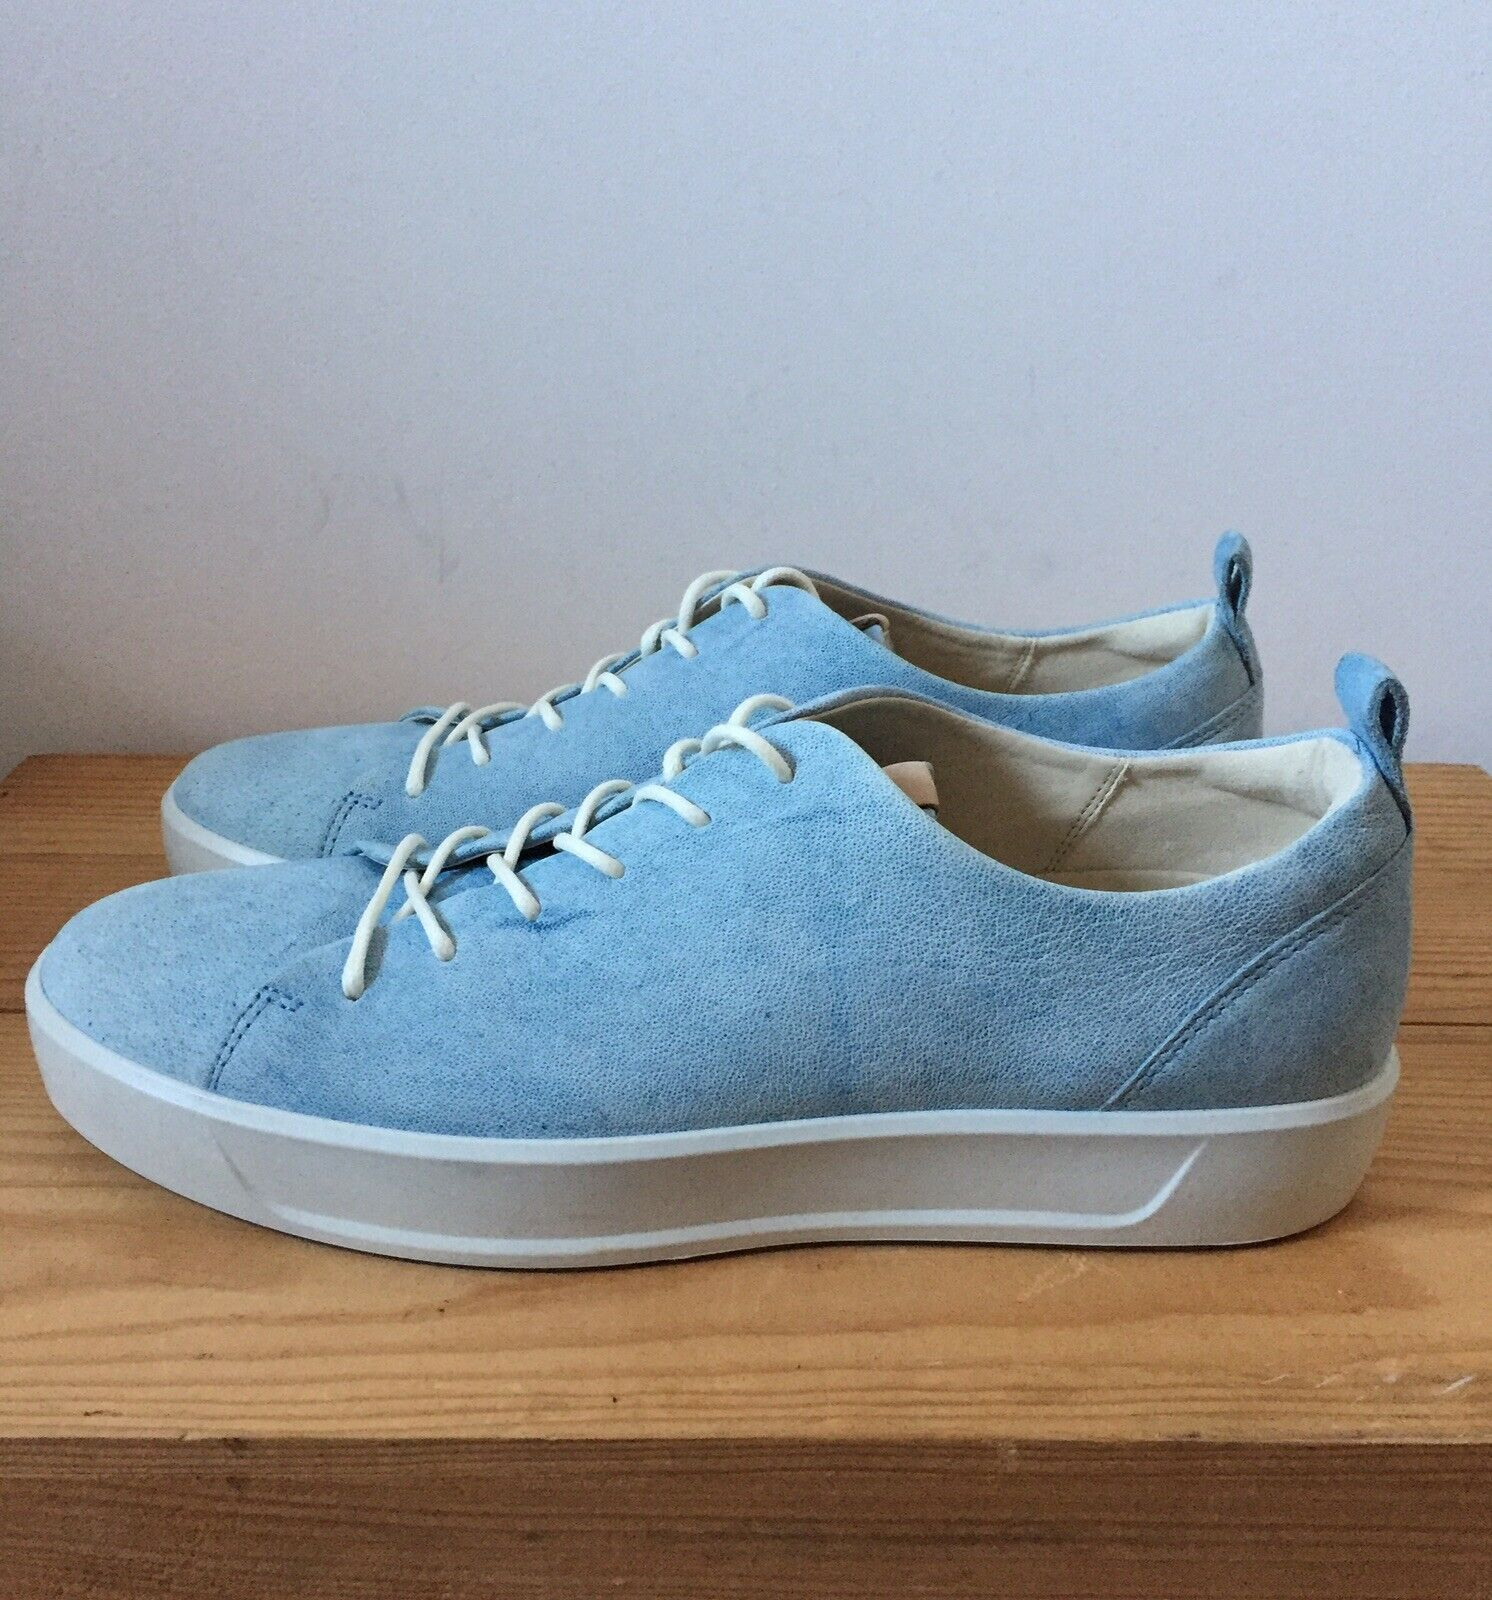 Ecco trainers Größe 9.5 NEW lace up pale Blau leather pebbled 43 schuhe comfort